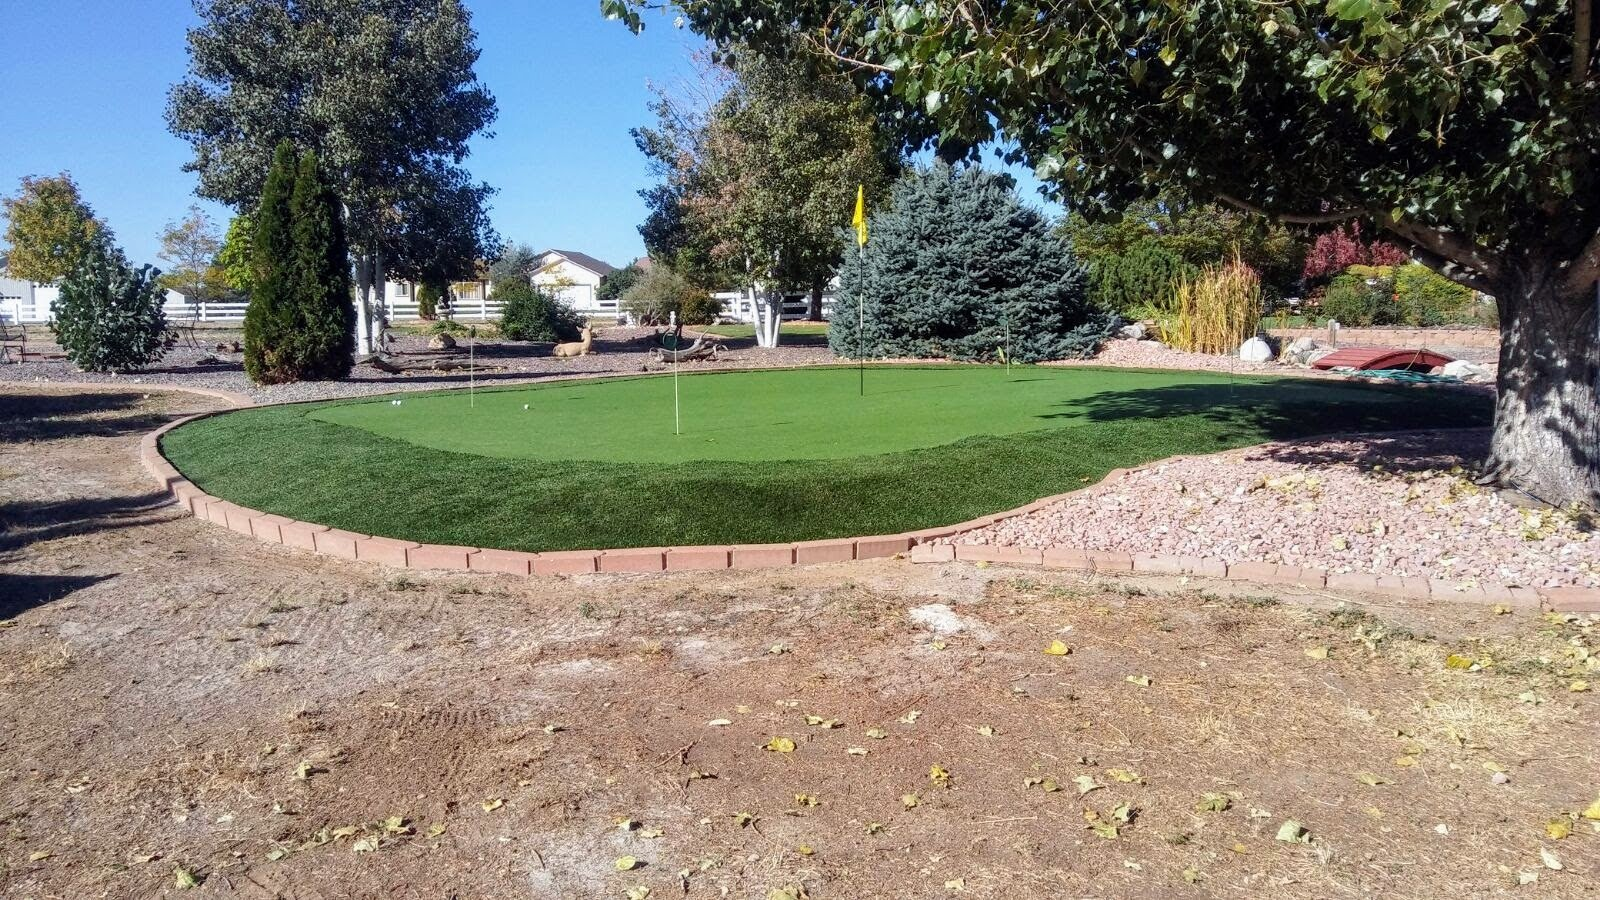 All Season Prime Synthetic Grass - Artificial Turf - Drainage Holes, 2'' blades Great for Sunny Climates (10' x 15') by Turf Pros Solution (Image #7)